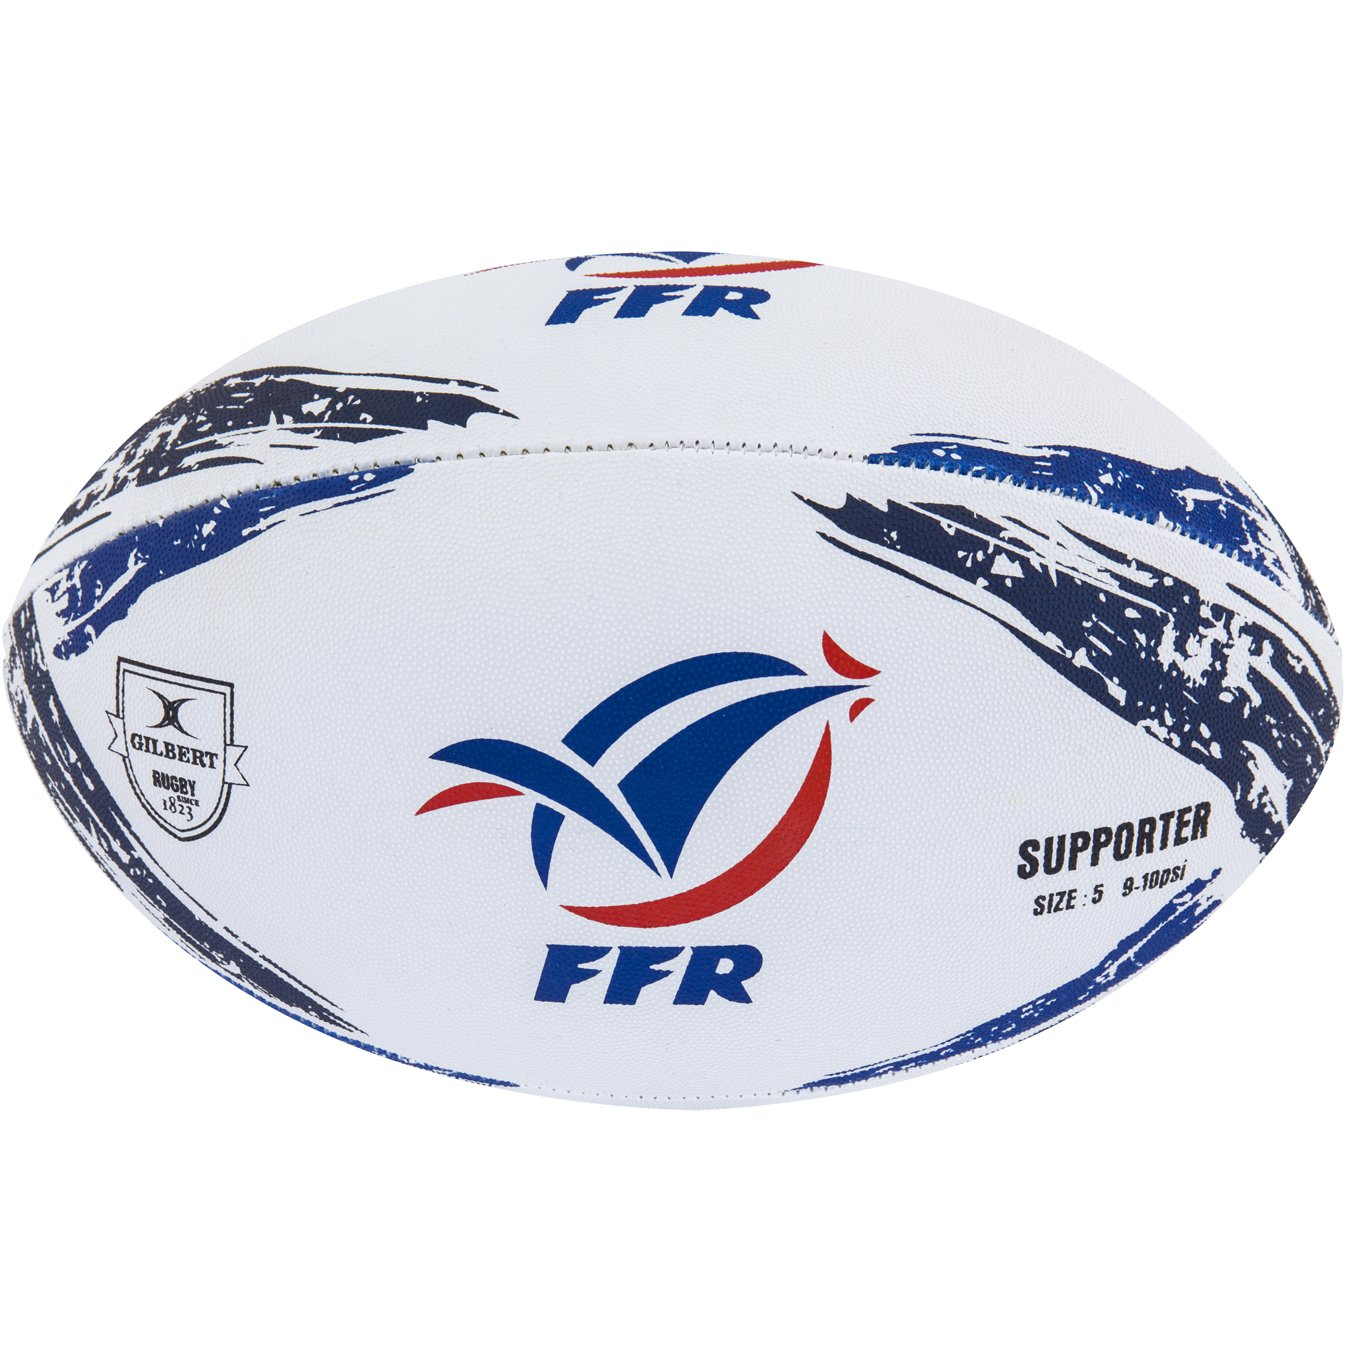 Gilbert Unisexe France Supporter Boule, Multicolore, taille 5 Grays 45084205